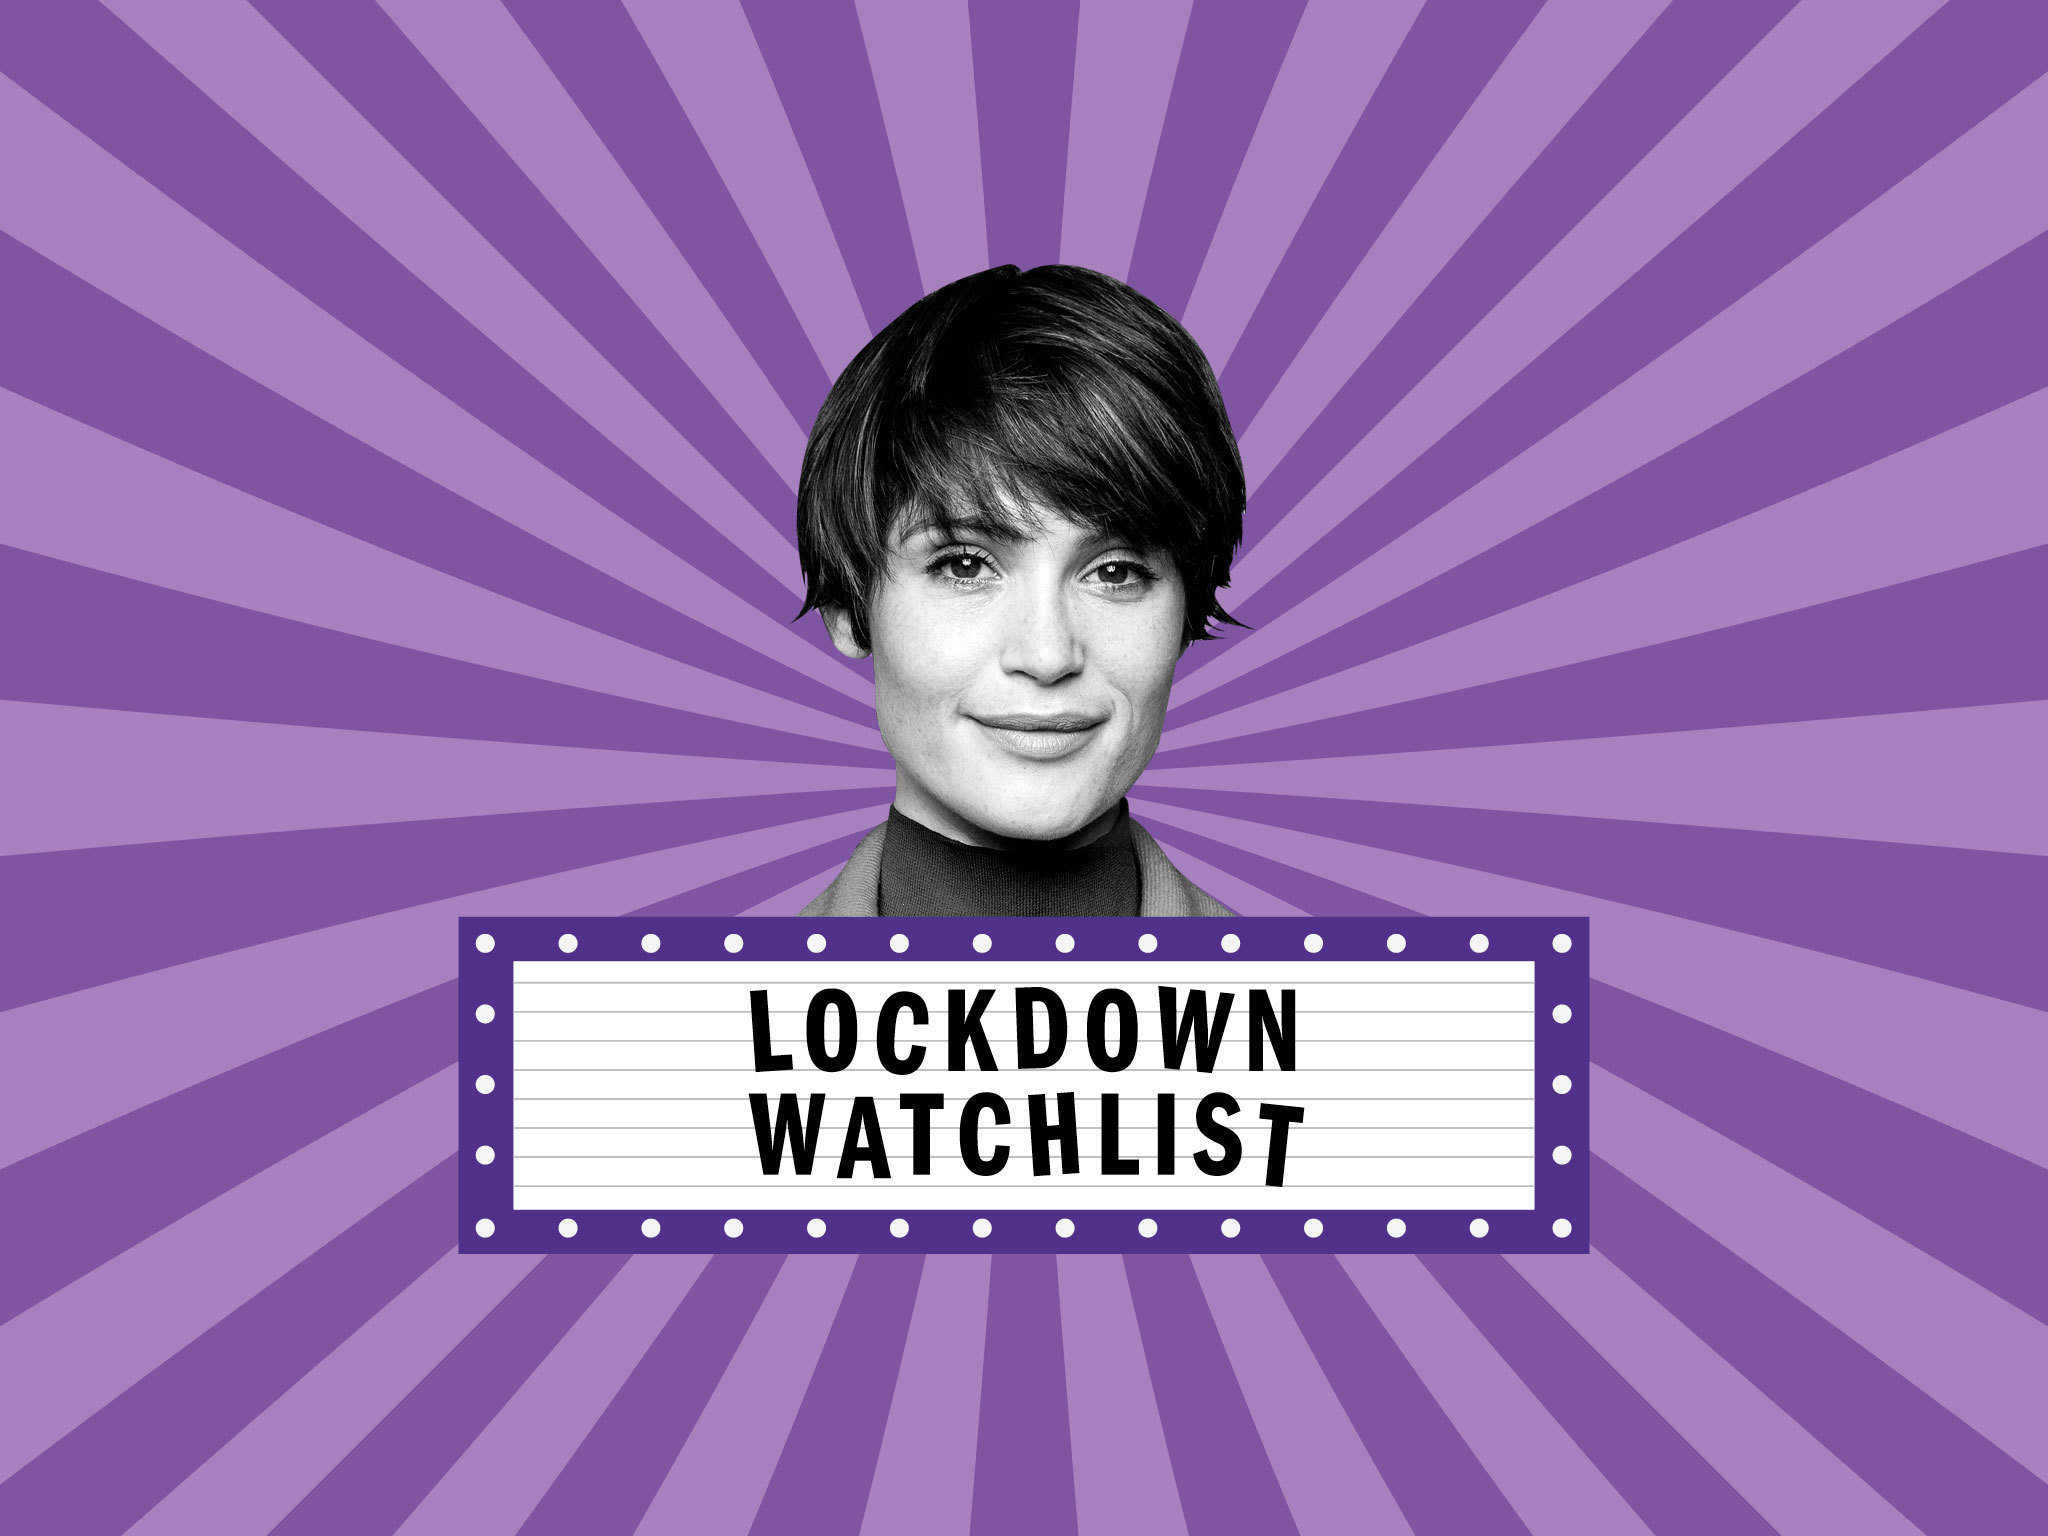 What is Gemma Arterton watching in lockdown?